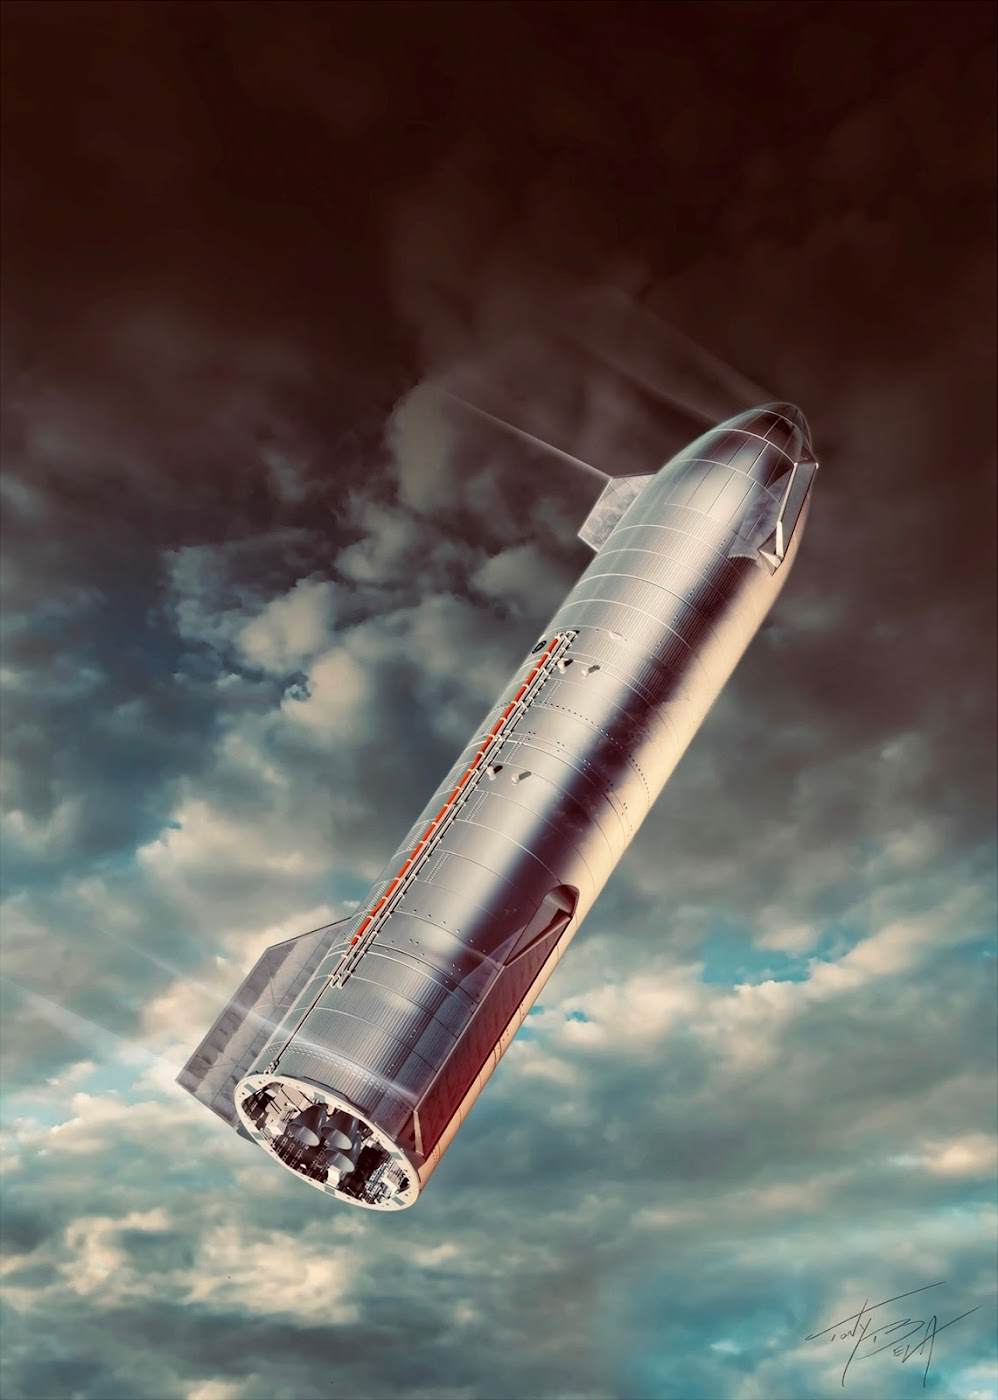 Poster of SpaceX's Starship SN8 belly flop maneuver by Tony Bela